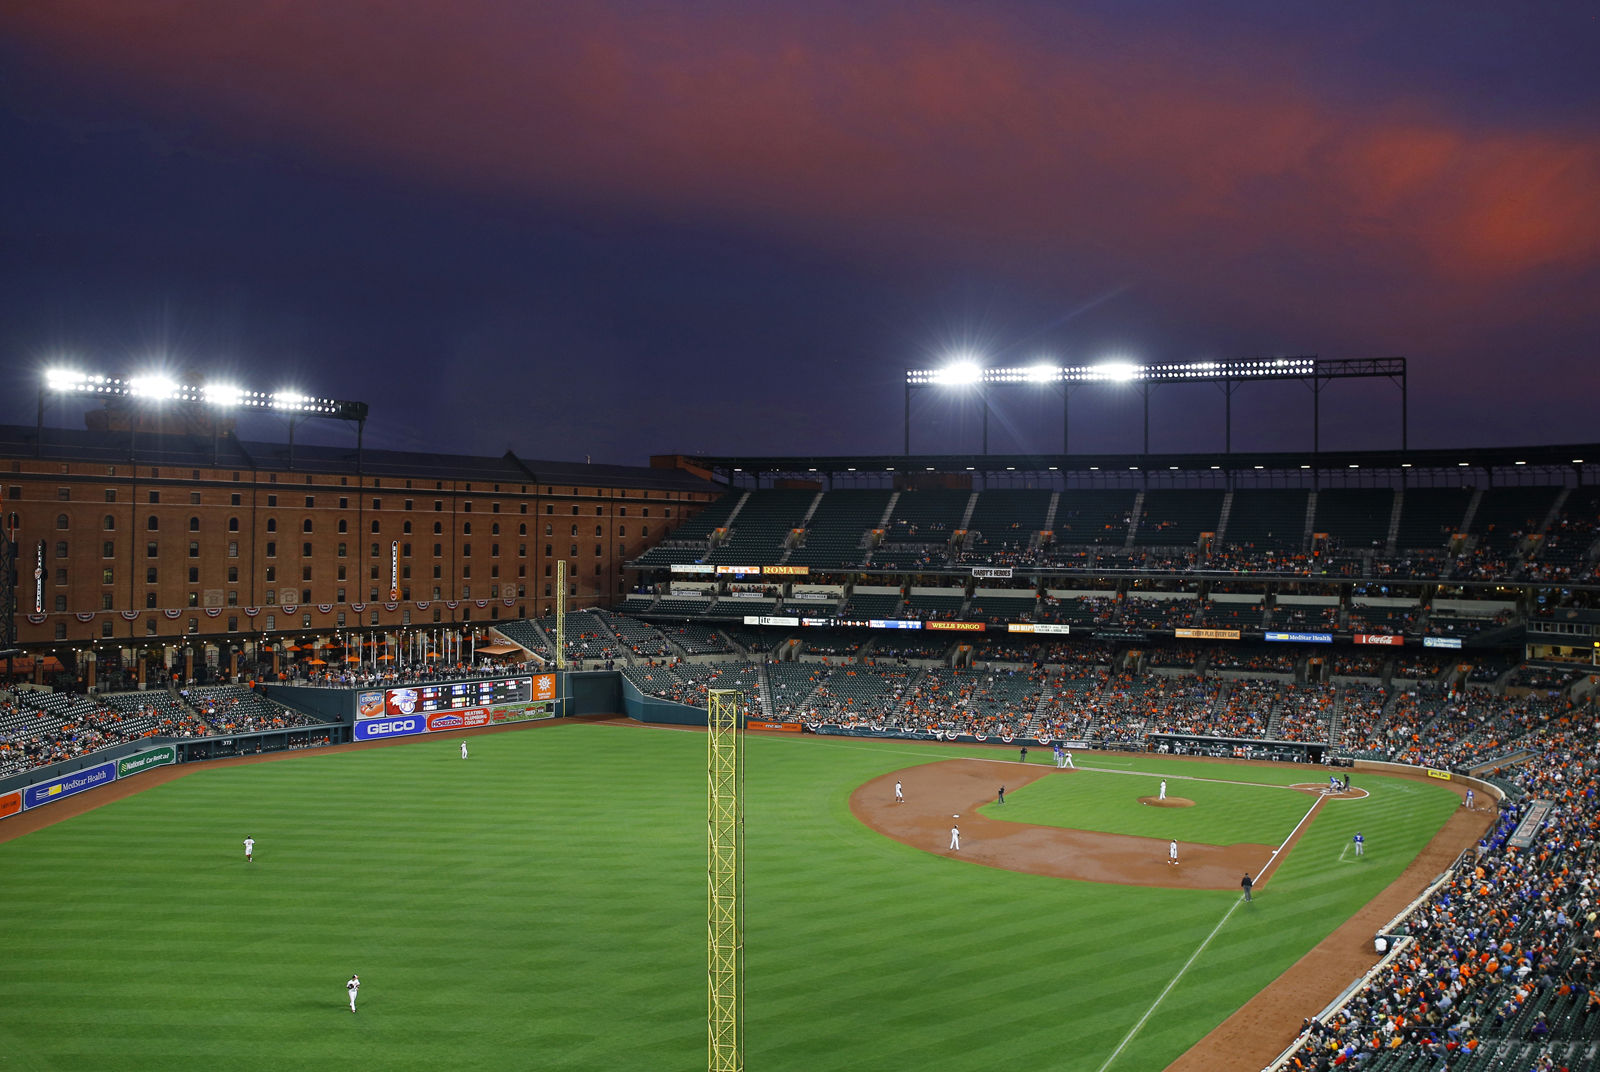 """Camden Yards ushered in the concept of the """"retro park"""" when it opened and is still considered by many to be one of the most beautiful ballparks to watch a game. It ranks as the 25th cheapest stadium with an average cost of $57.83. File. (AP Photo/Patrick Semansky)"""